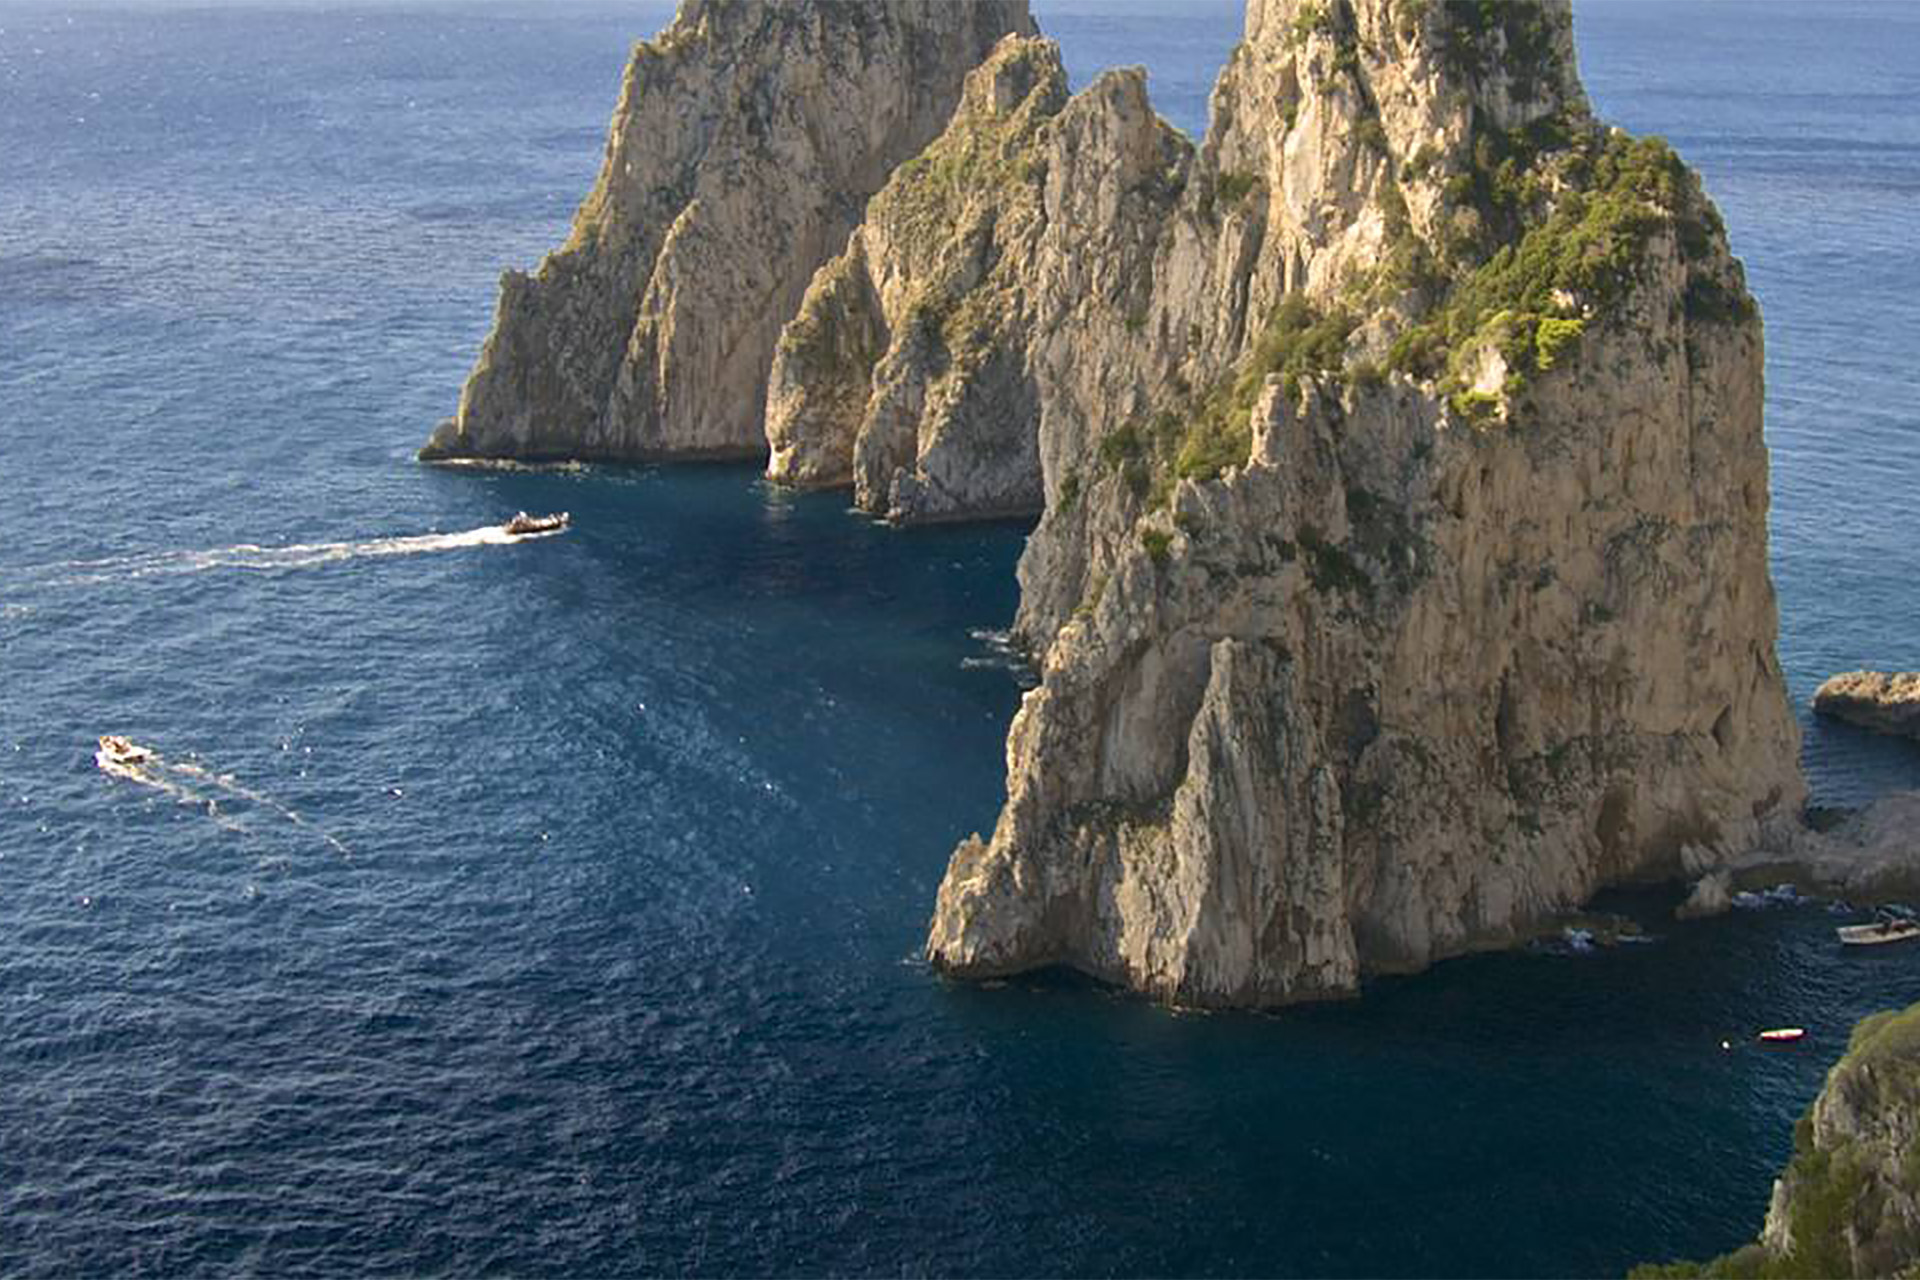 CAPRI DREAM, Leisure Activities in Amalfi Coast